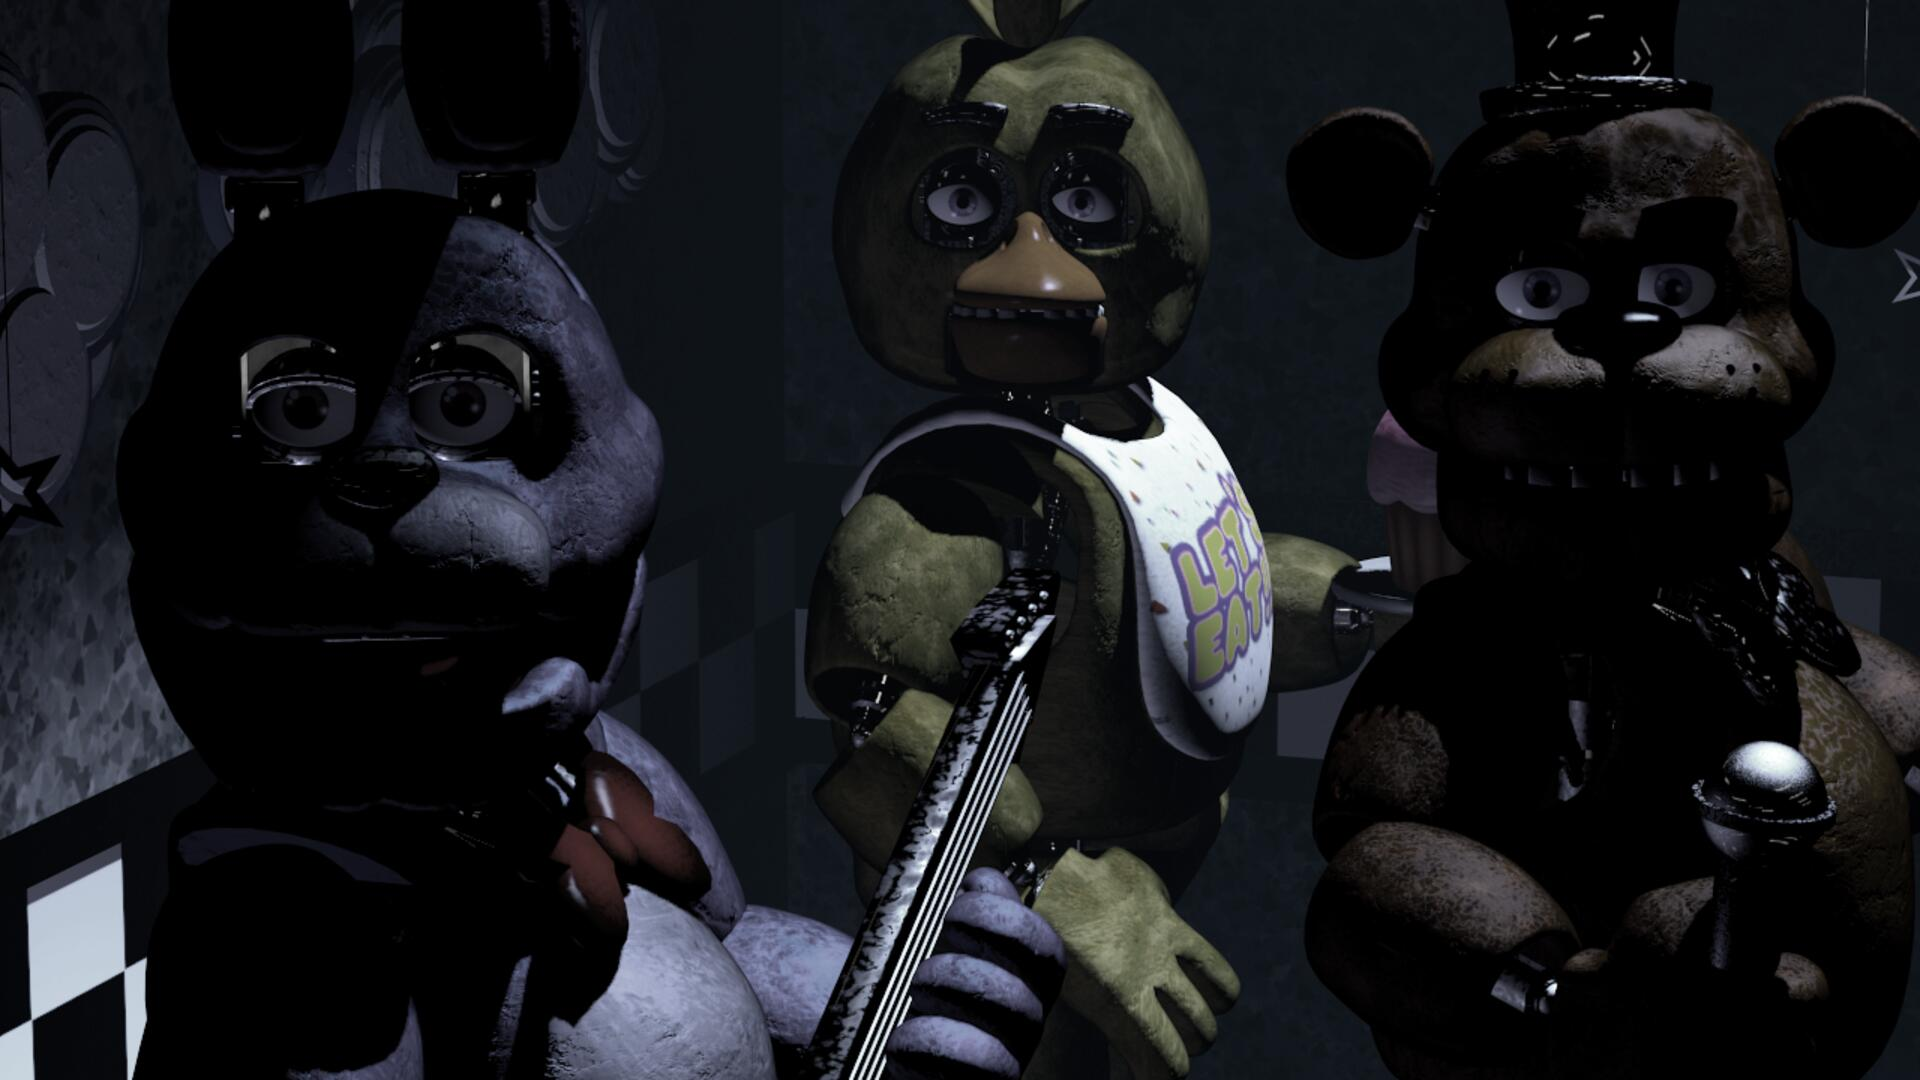 I Played Five Nights at Freddy's VR and Now Never Want to